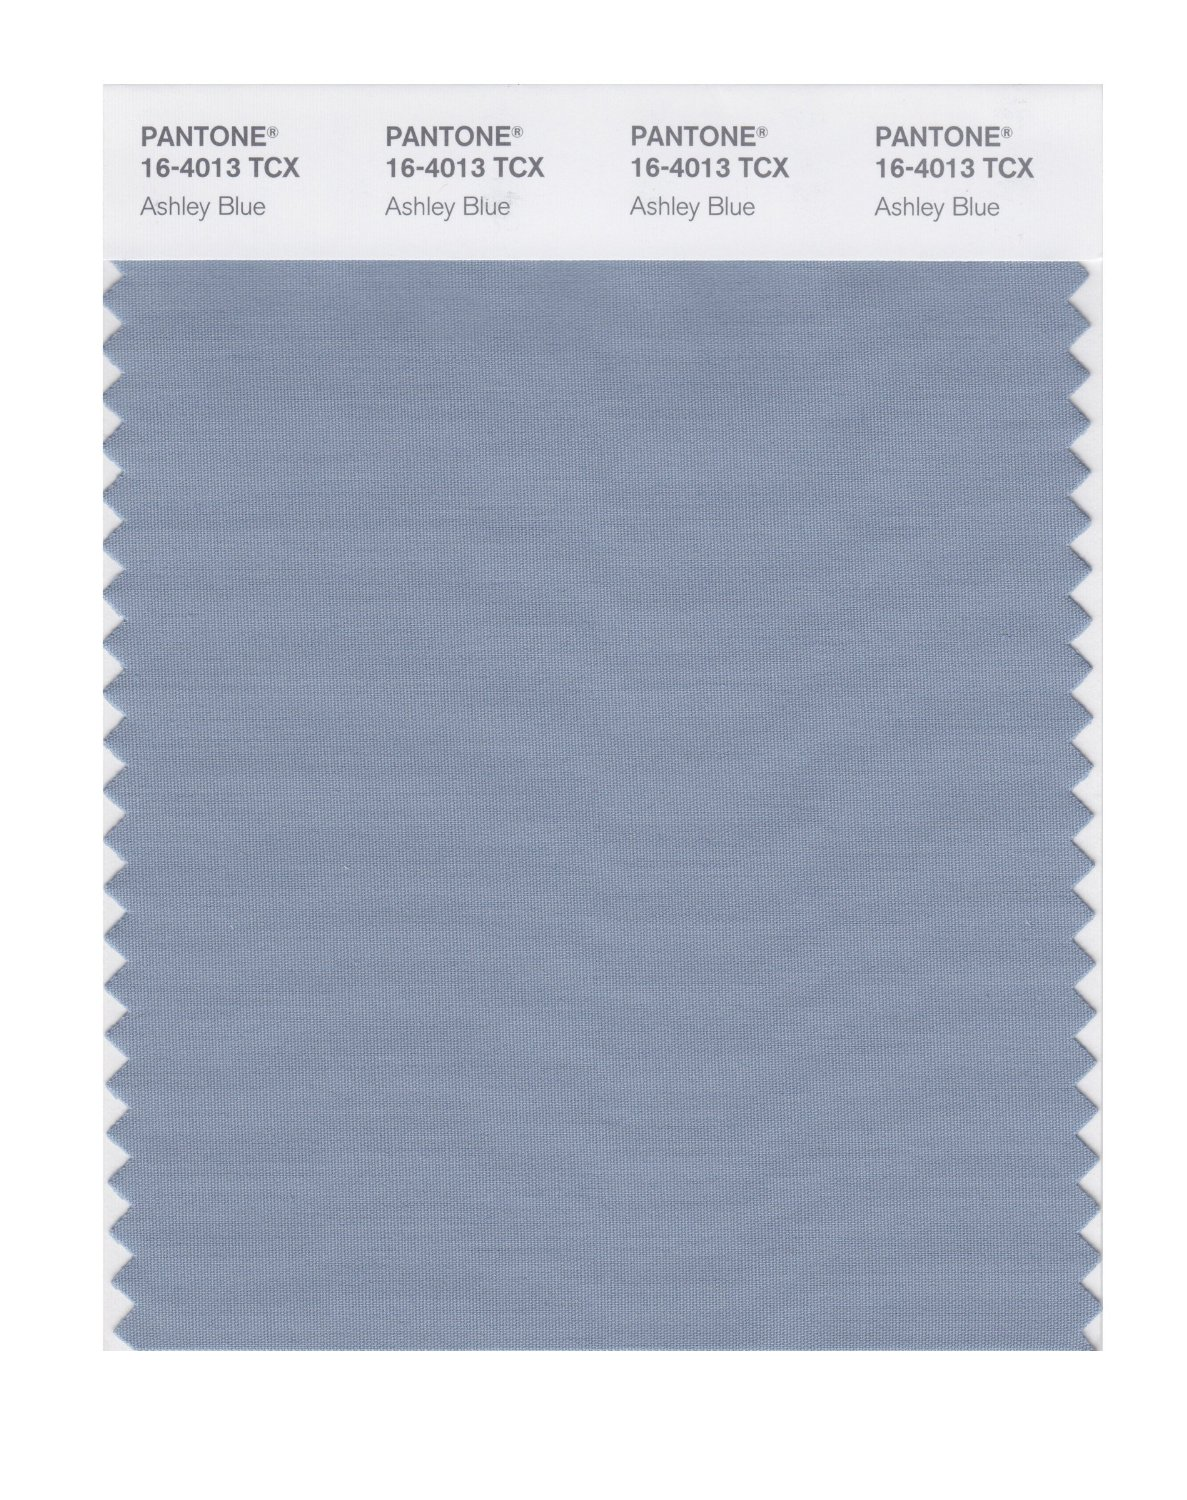 Pantone Smart Swatch 16-4013 Ashley Blue